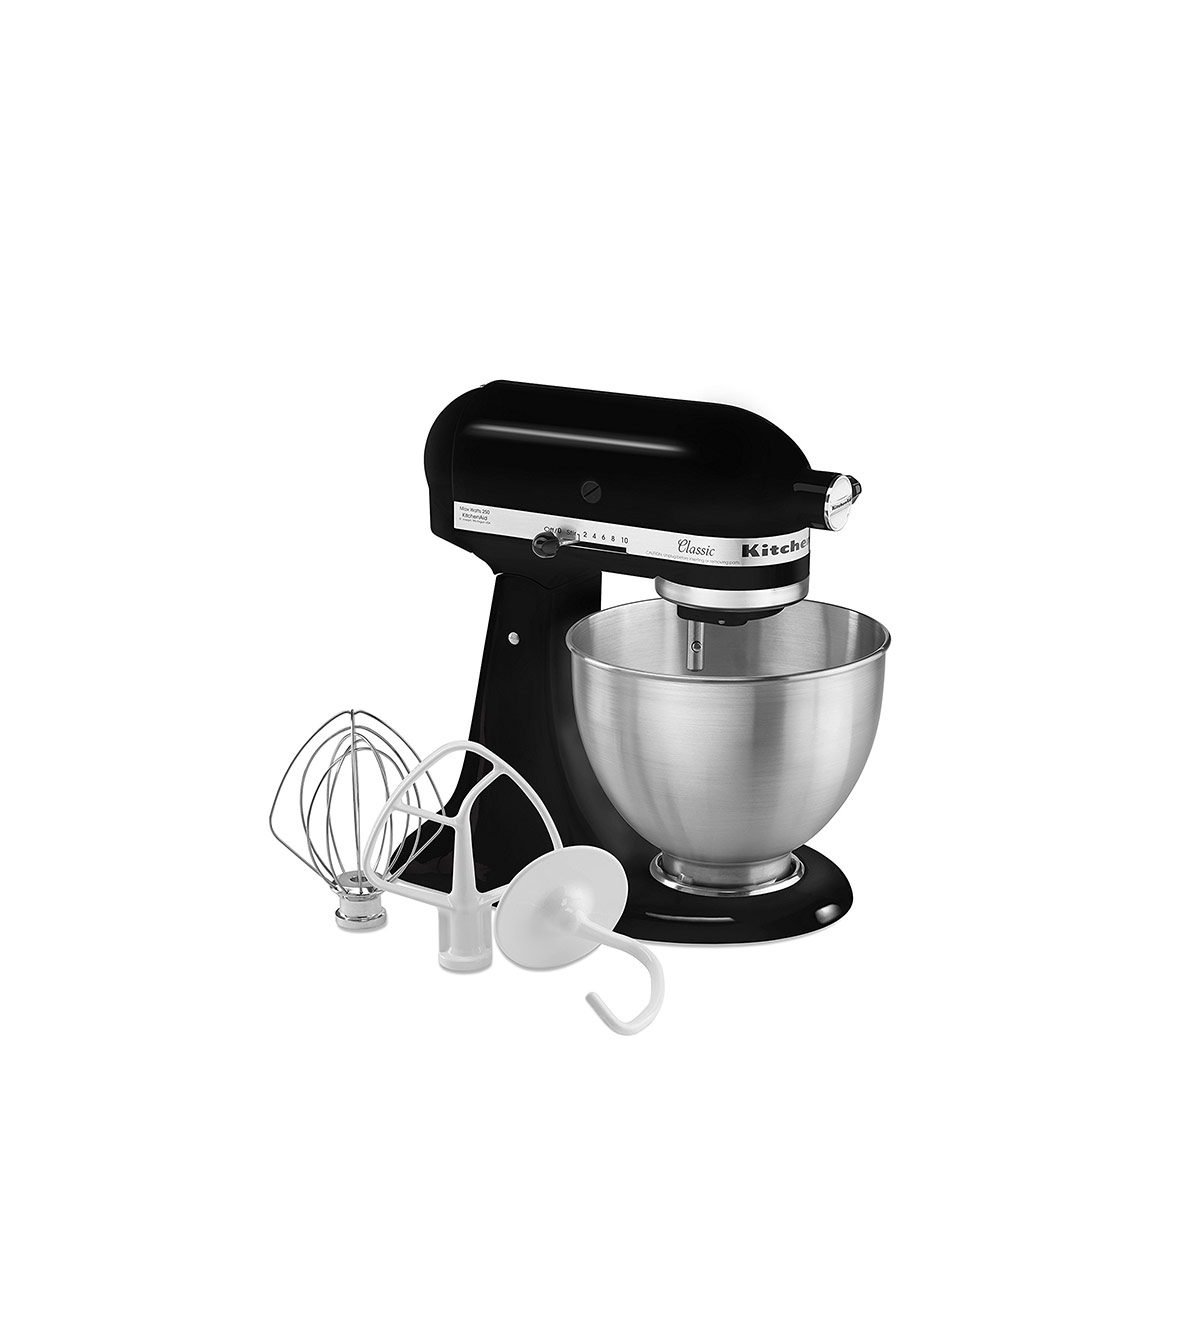 KitchenAid Classic Series Stand Mixer